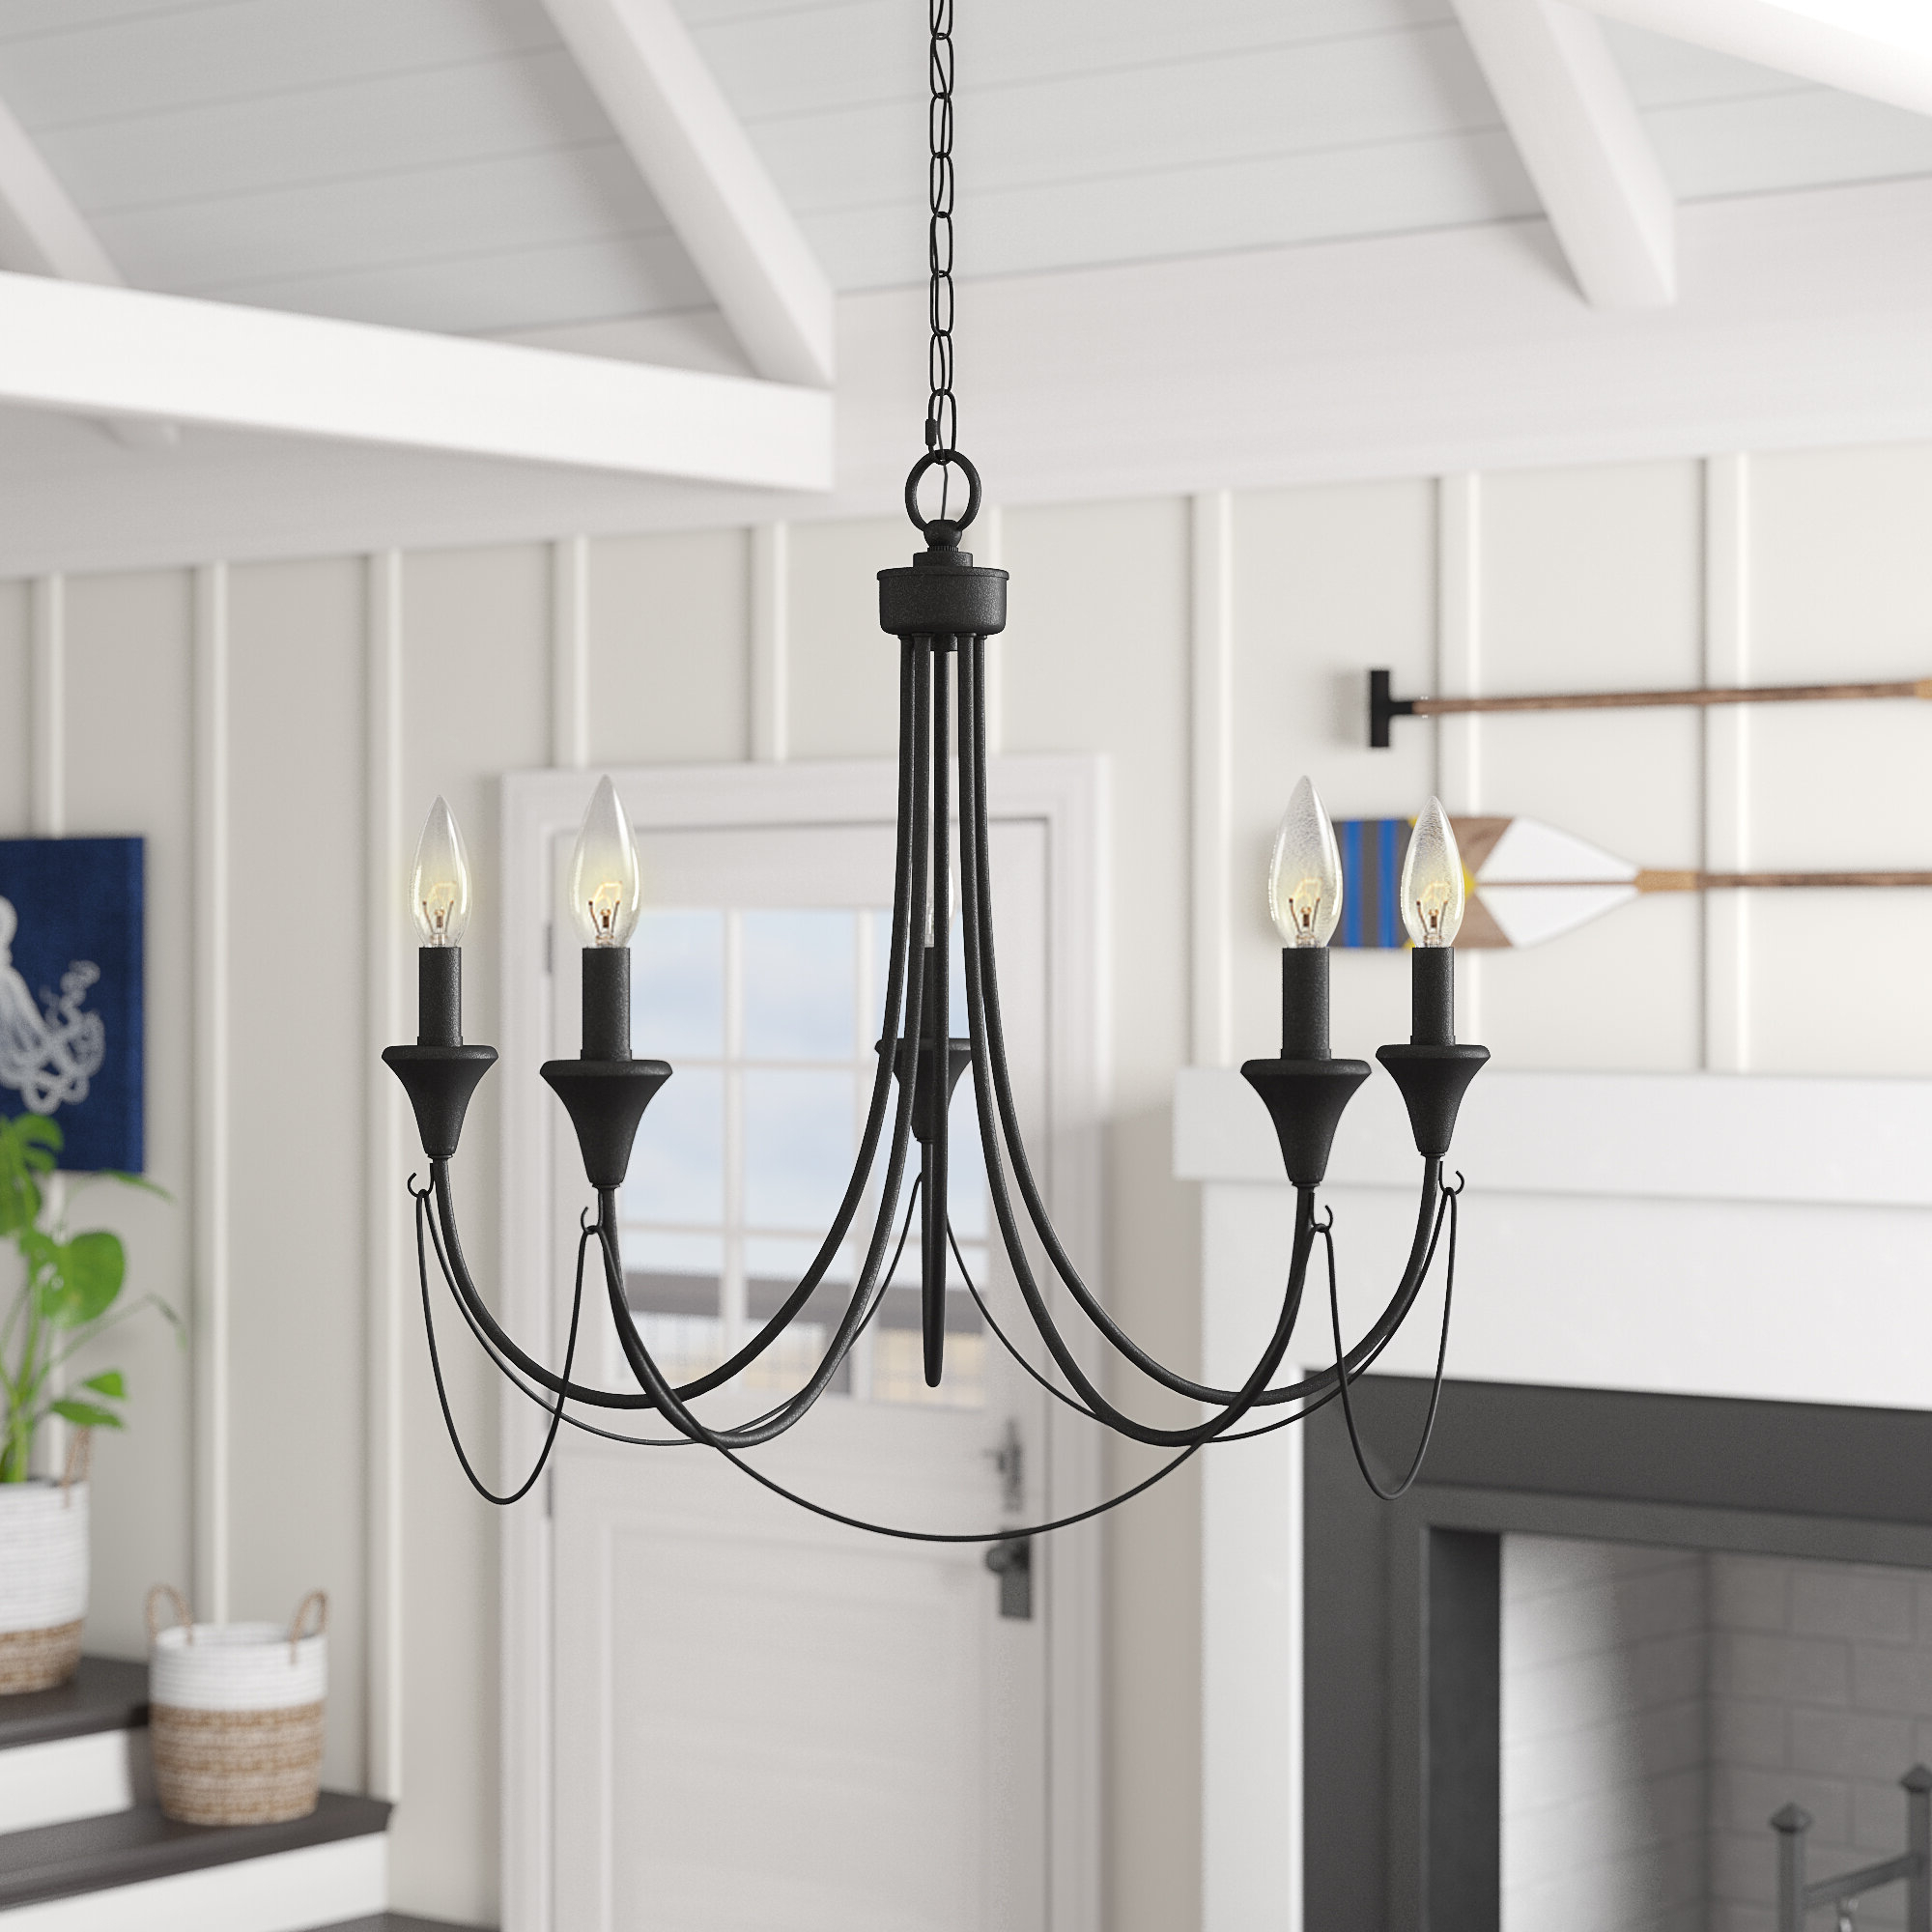 Shaylee 5 Light Candle Style Chandeliers Intended For Recent Walczak 5 Light Candle Style Chandelier (View 8 of 25)